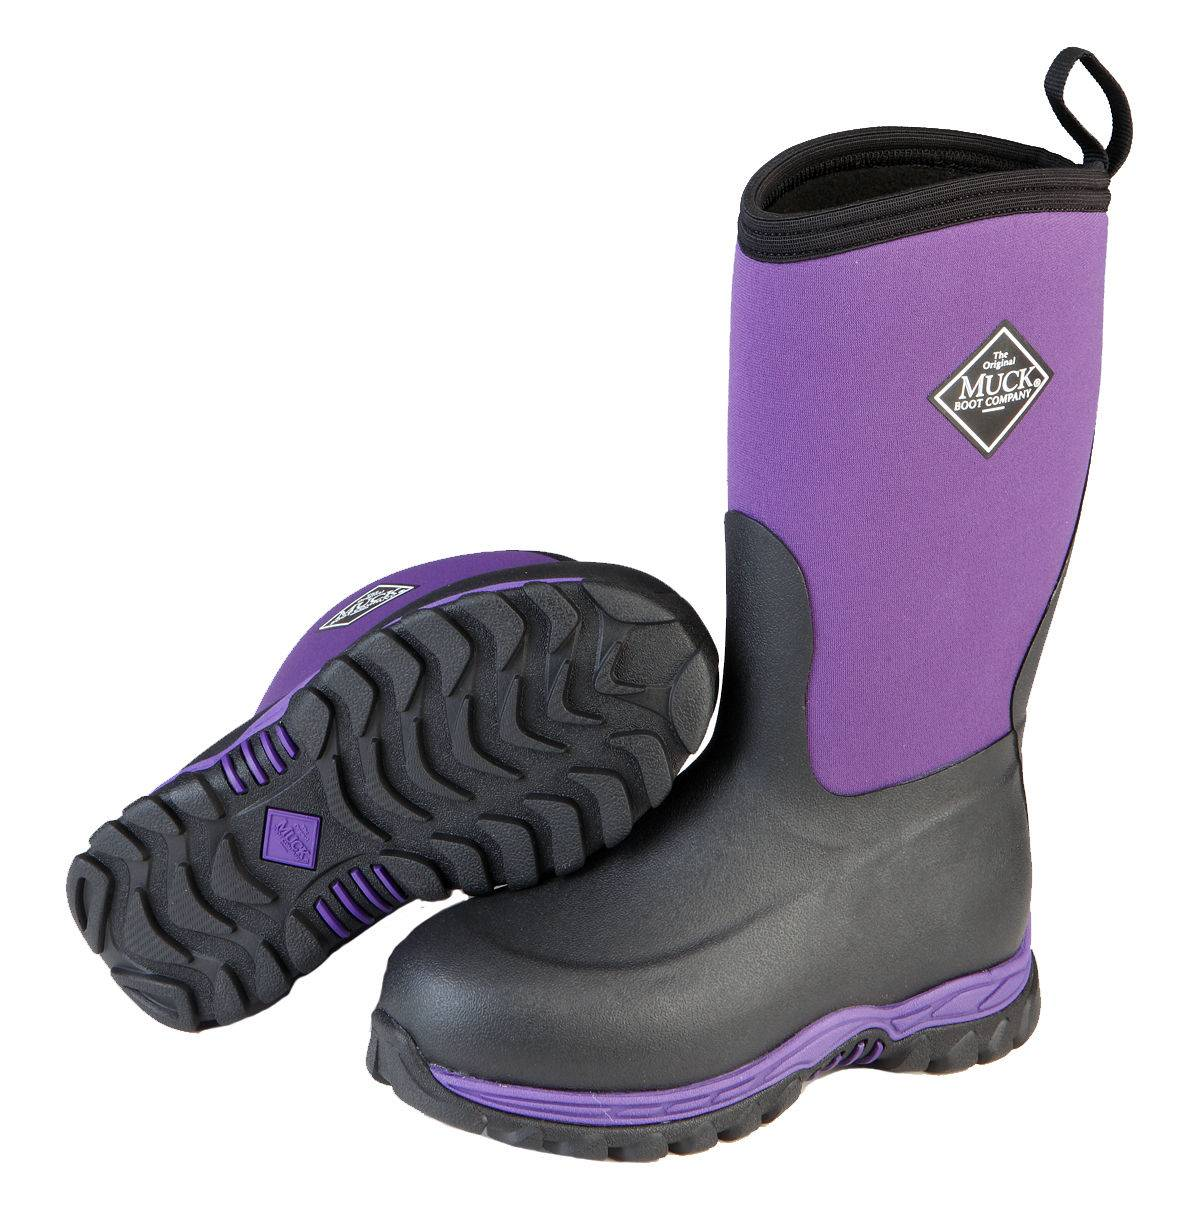 Muck Boots Kids Rugged II - Black/Purple